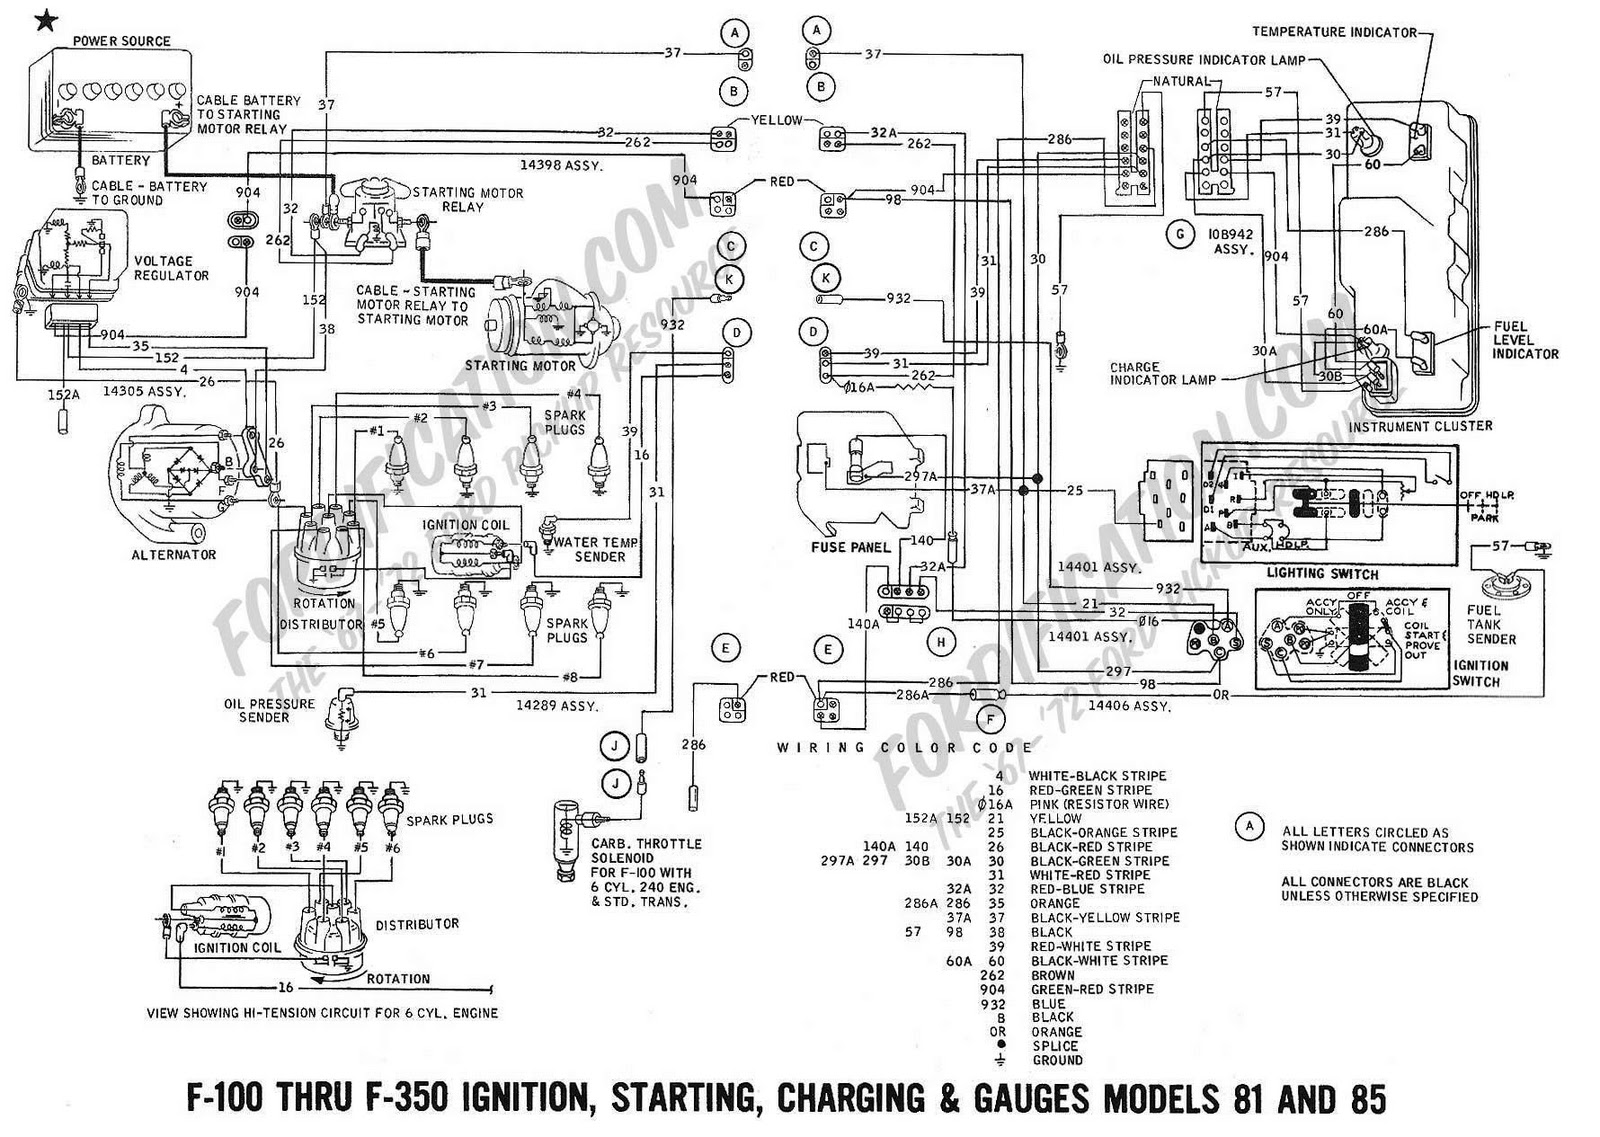 1969 Ford F100 F350 Ignition%2C Starting%2C Charging%2C And Gauges Wiring Diagram 1993 ford f250 wiring diagram 1993 ford f 250 engine \u2022 free wiring Basic Electrical Wiring Diagrams at soozxer.org